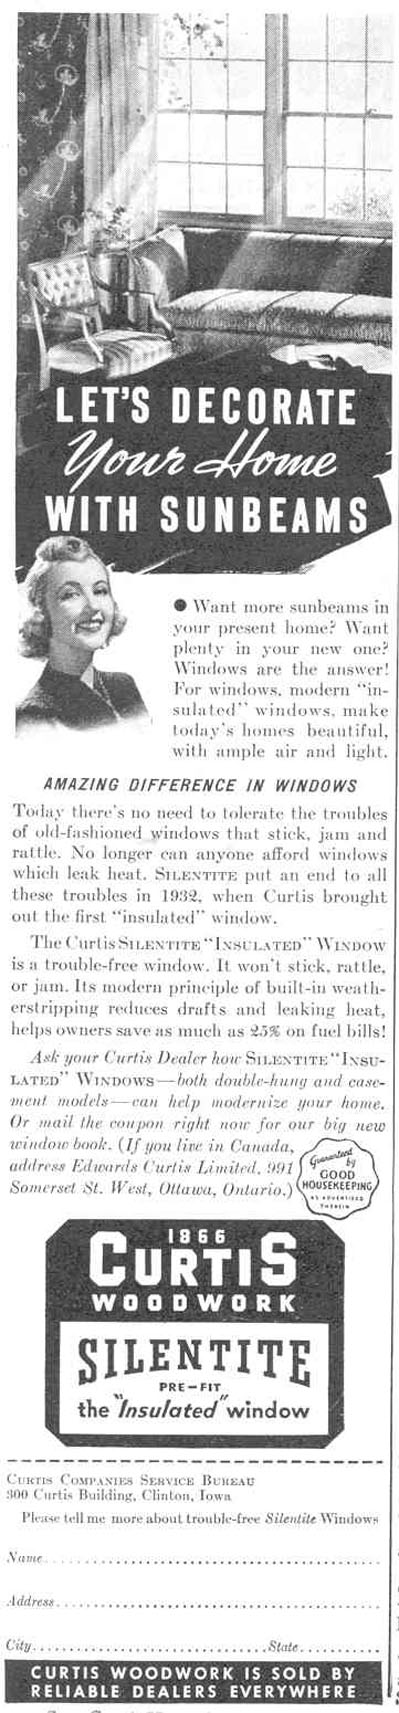 CURTIS SILENTITE INSULATED WINDOWS GOOD HOUSEKEEPING 03/01/1940 p. 172